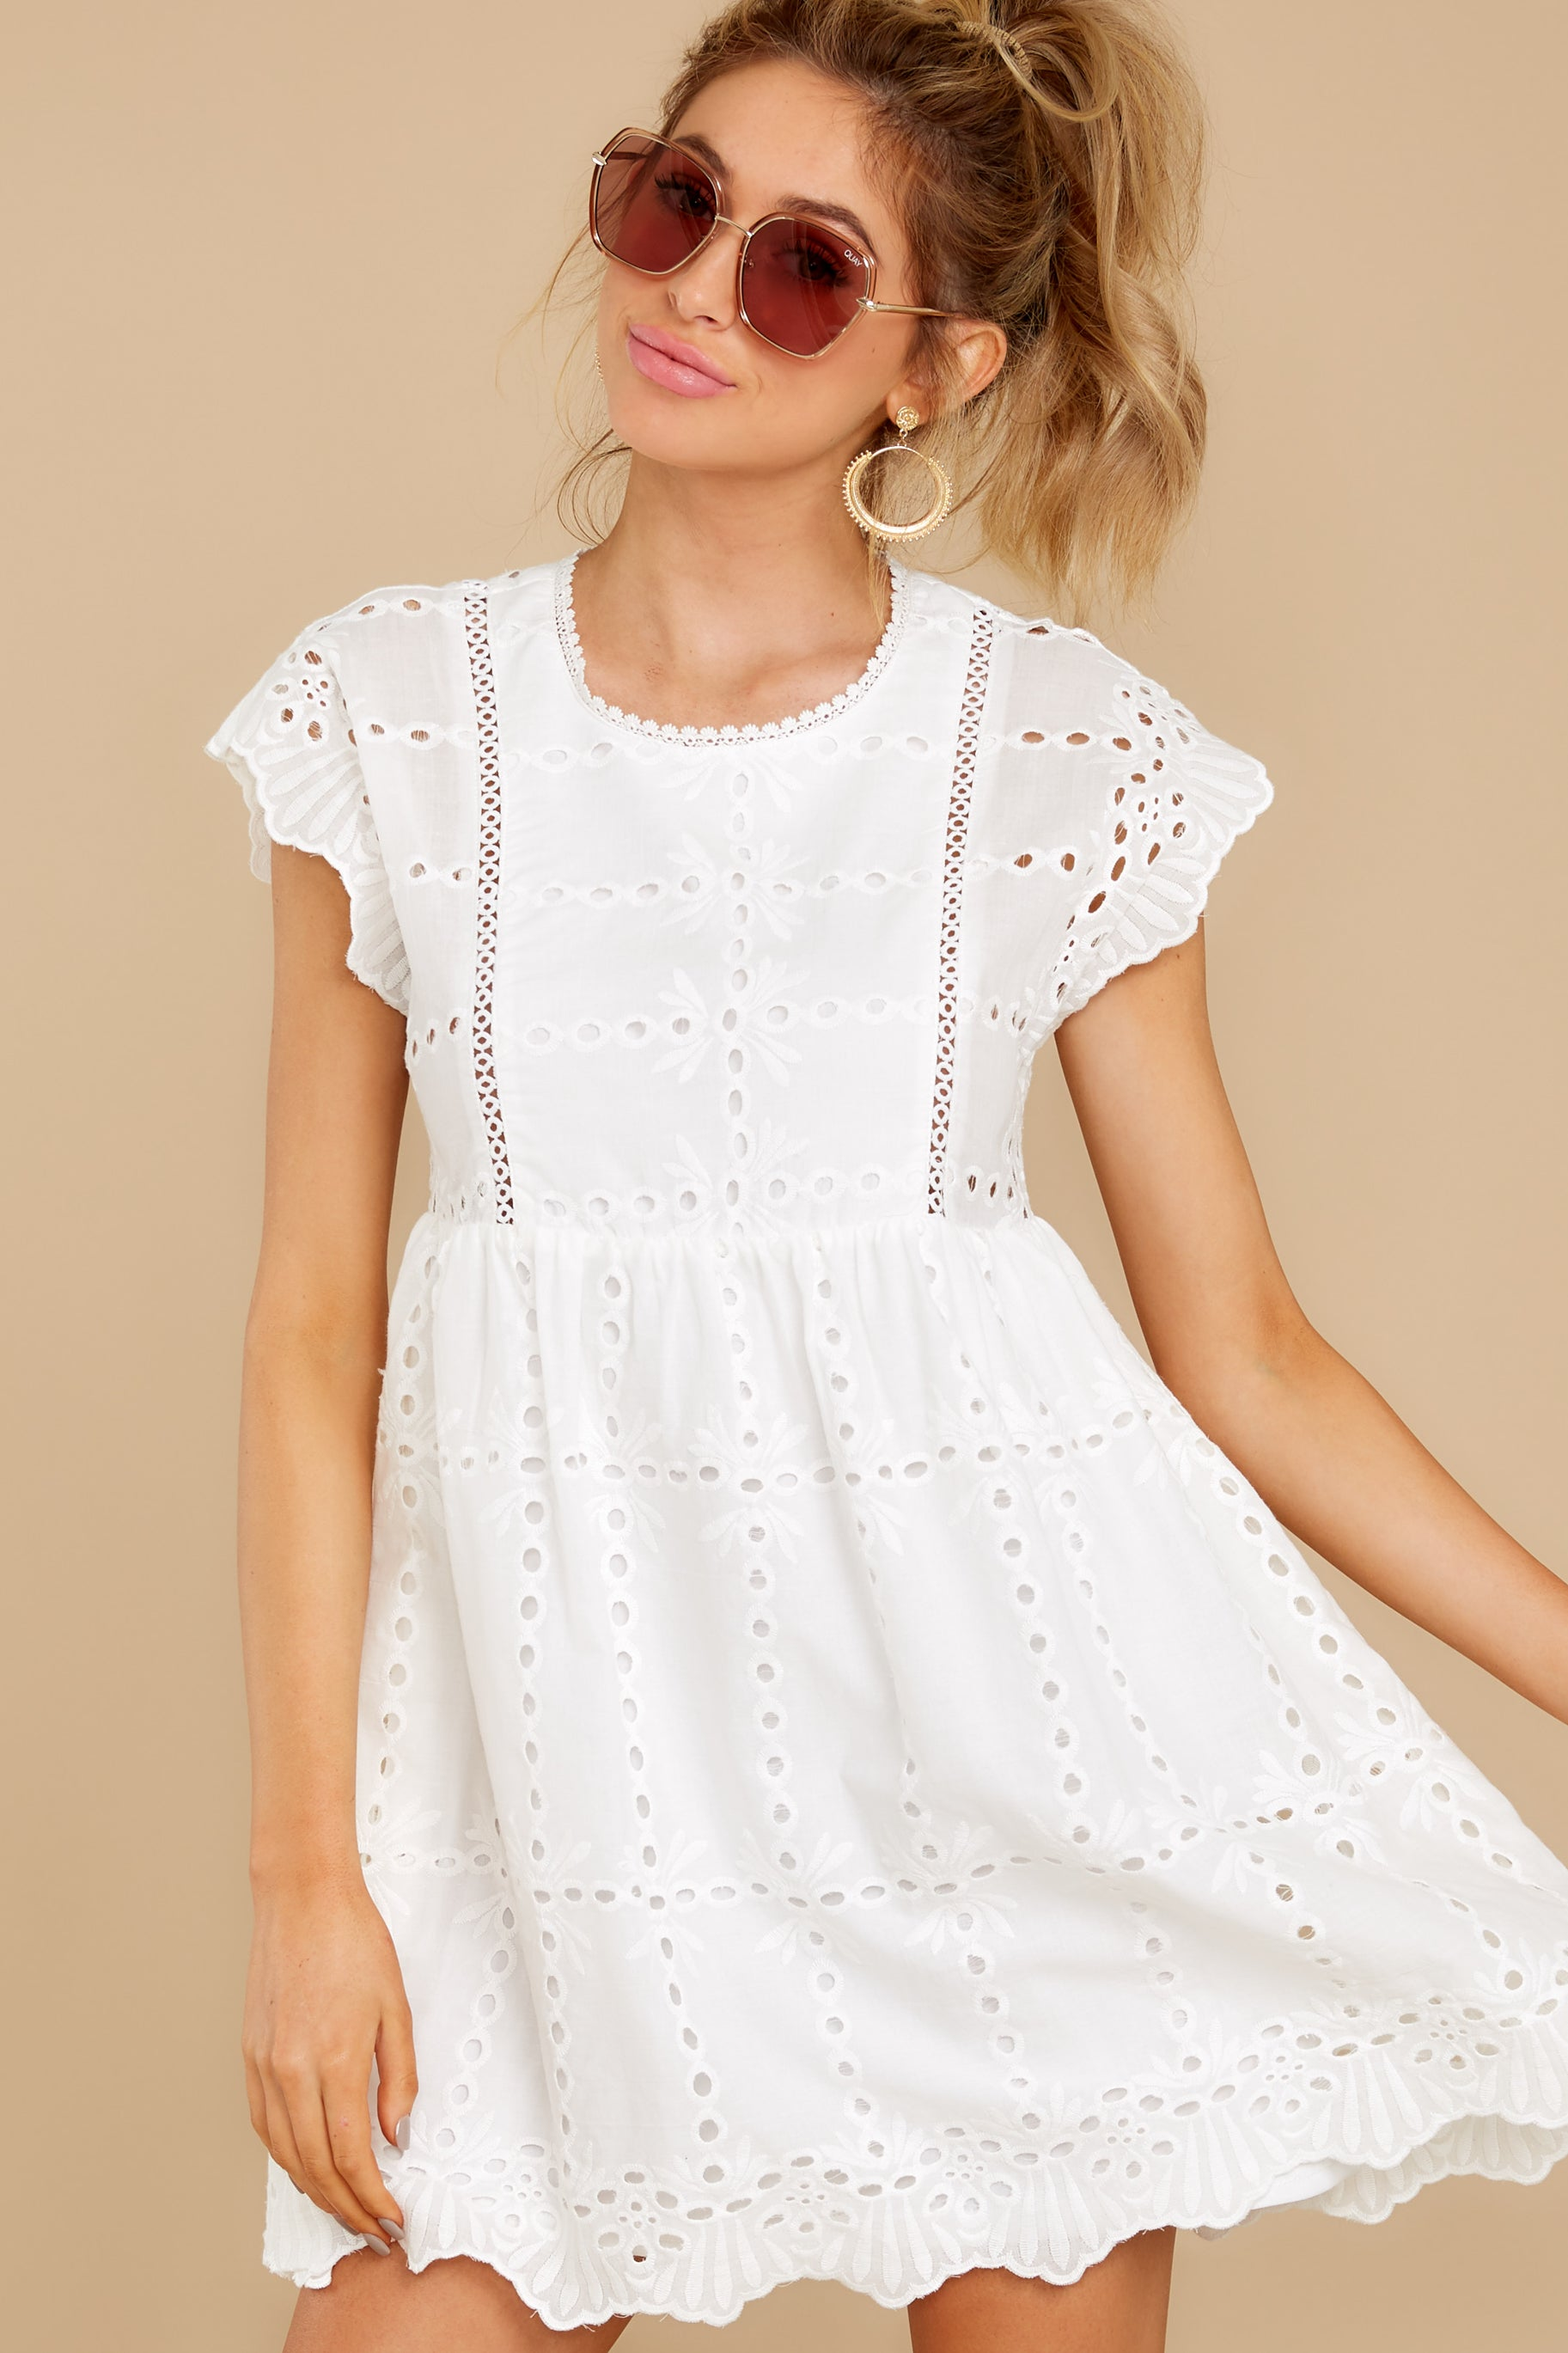 6 Better To Be Sweet White Eyelet Dress at reddress.com